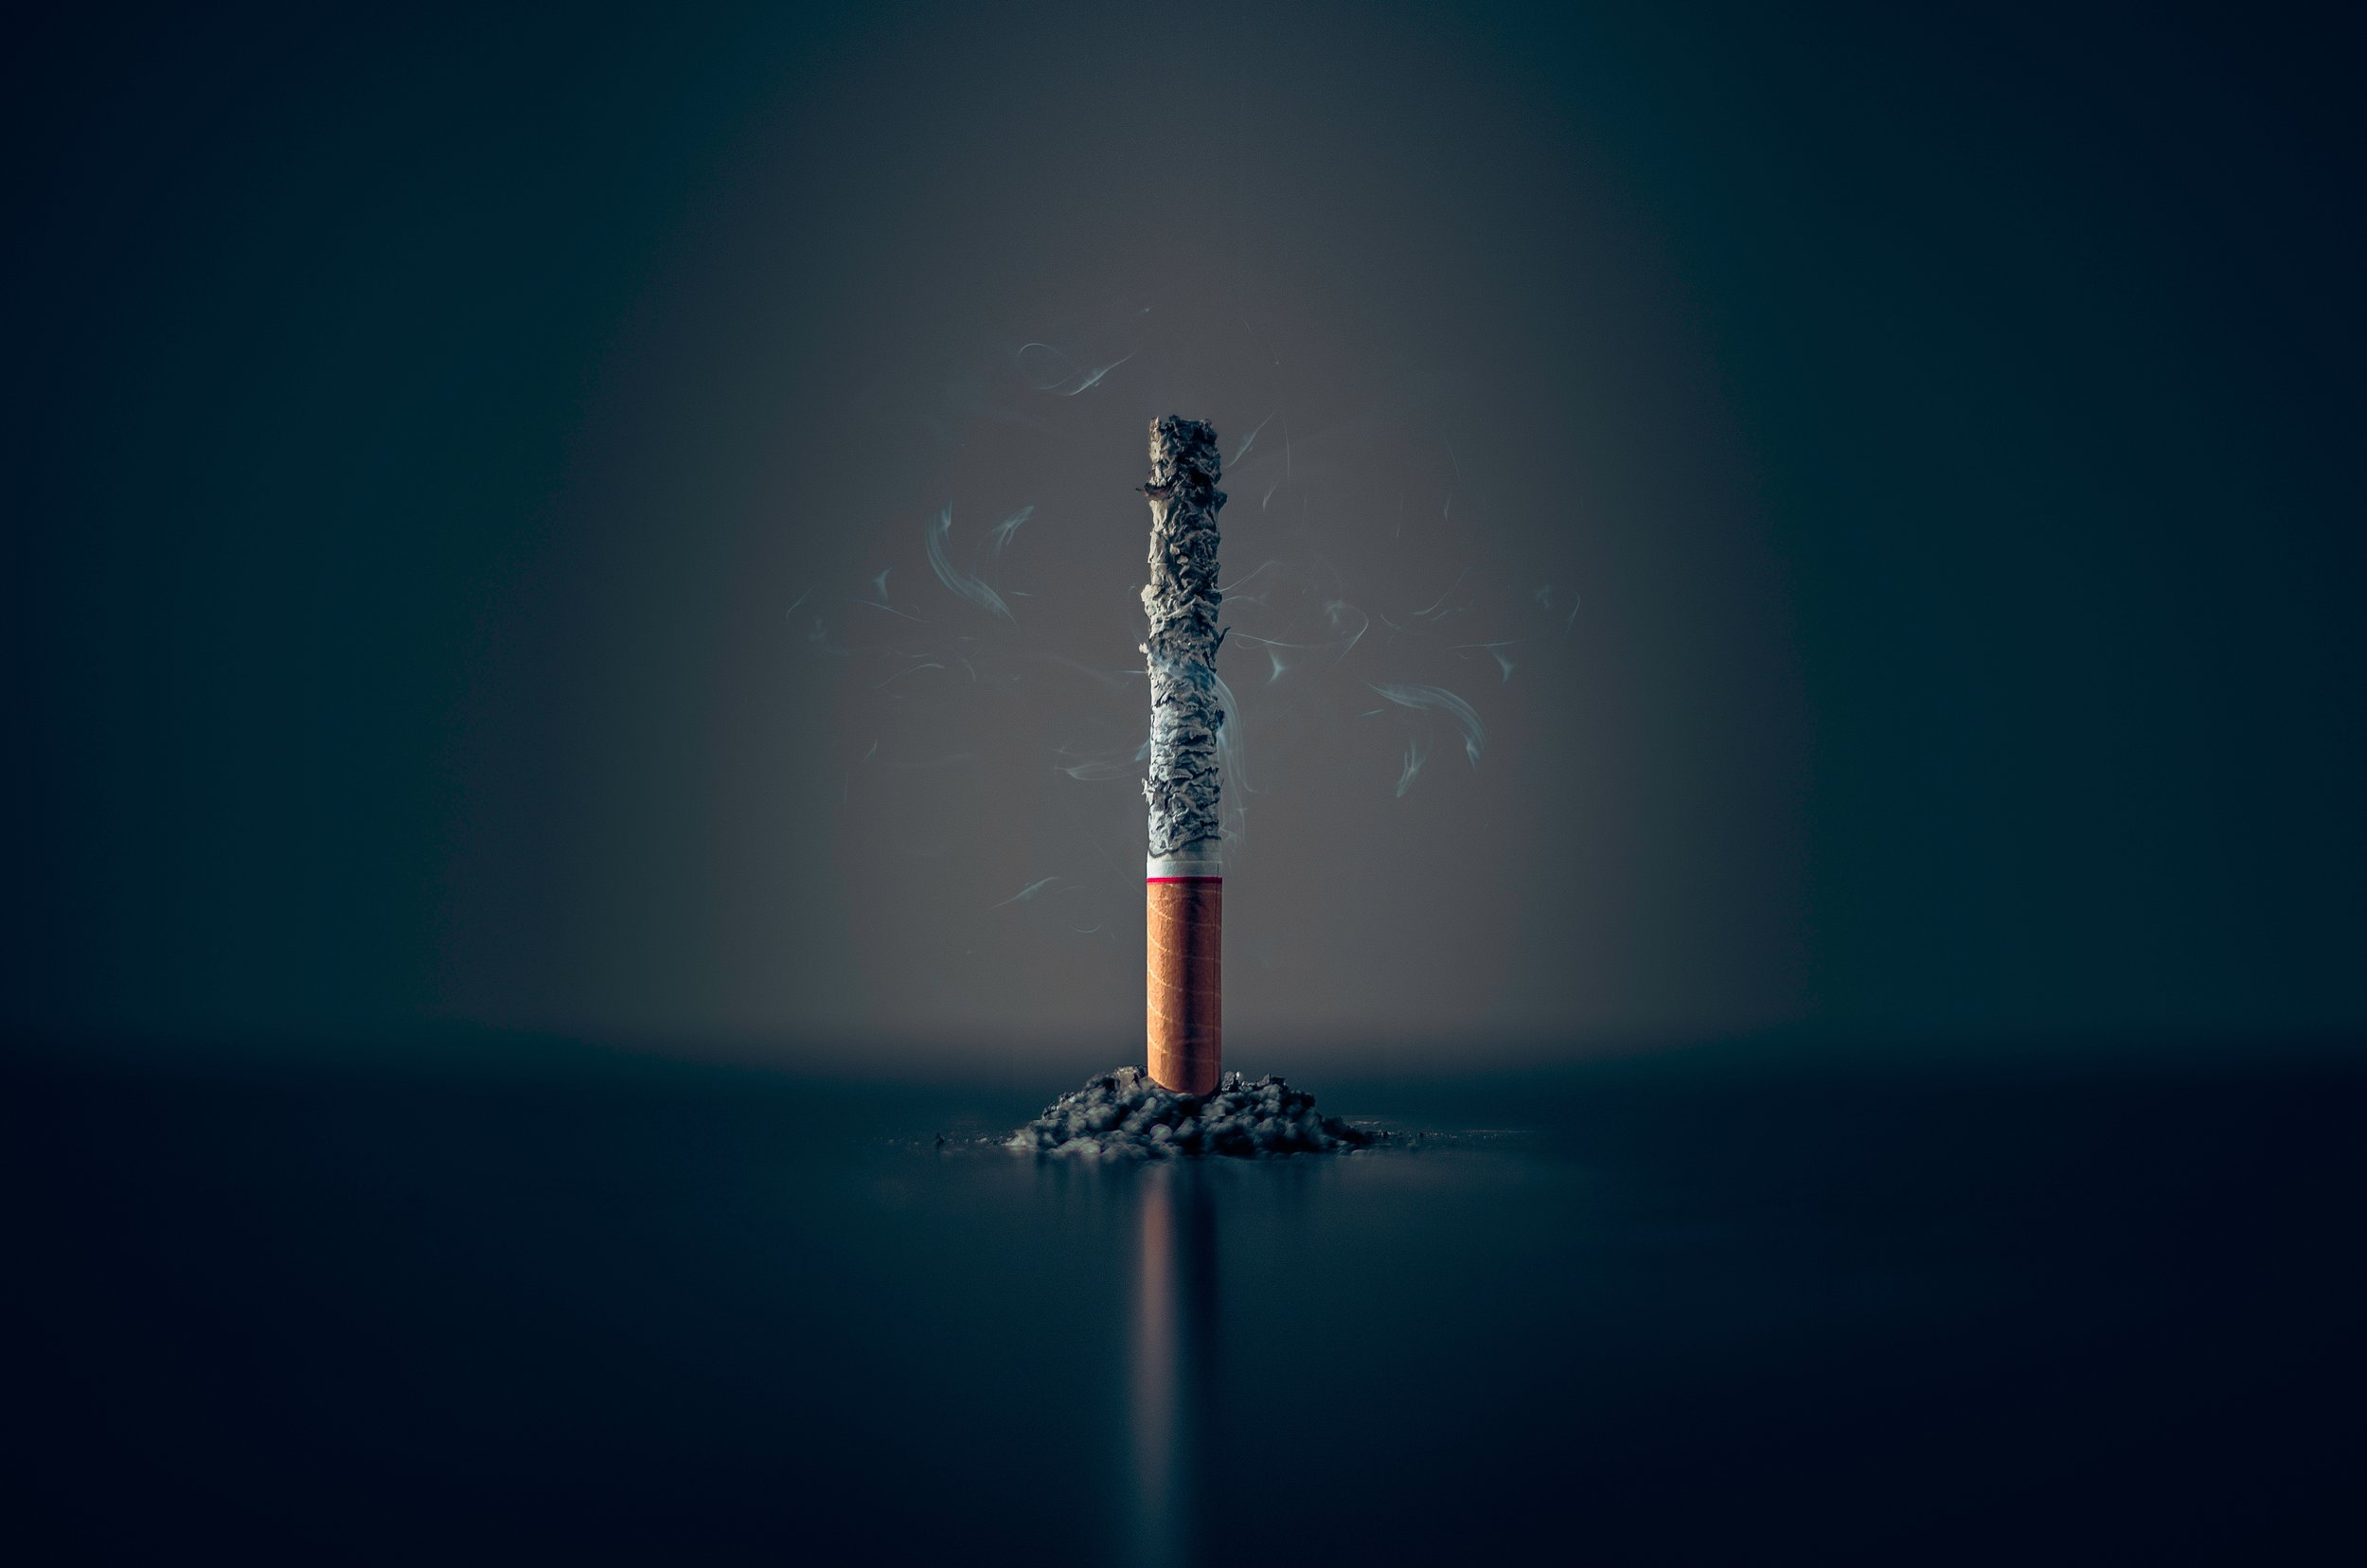 smoking cessation consultation - Whether you are ready to quit smoking or just thinking about quitting, speak to our trained pharmacist to discuss your options. We are here to guide you in meeting your goals.Call to book your appointment: 204-254-4257